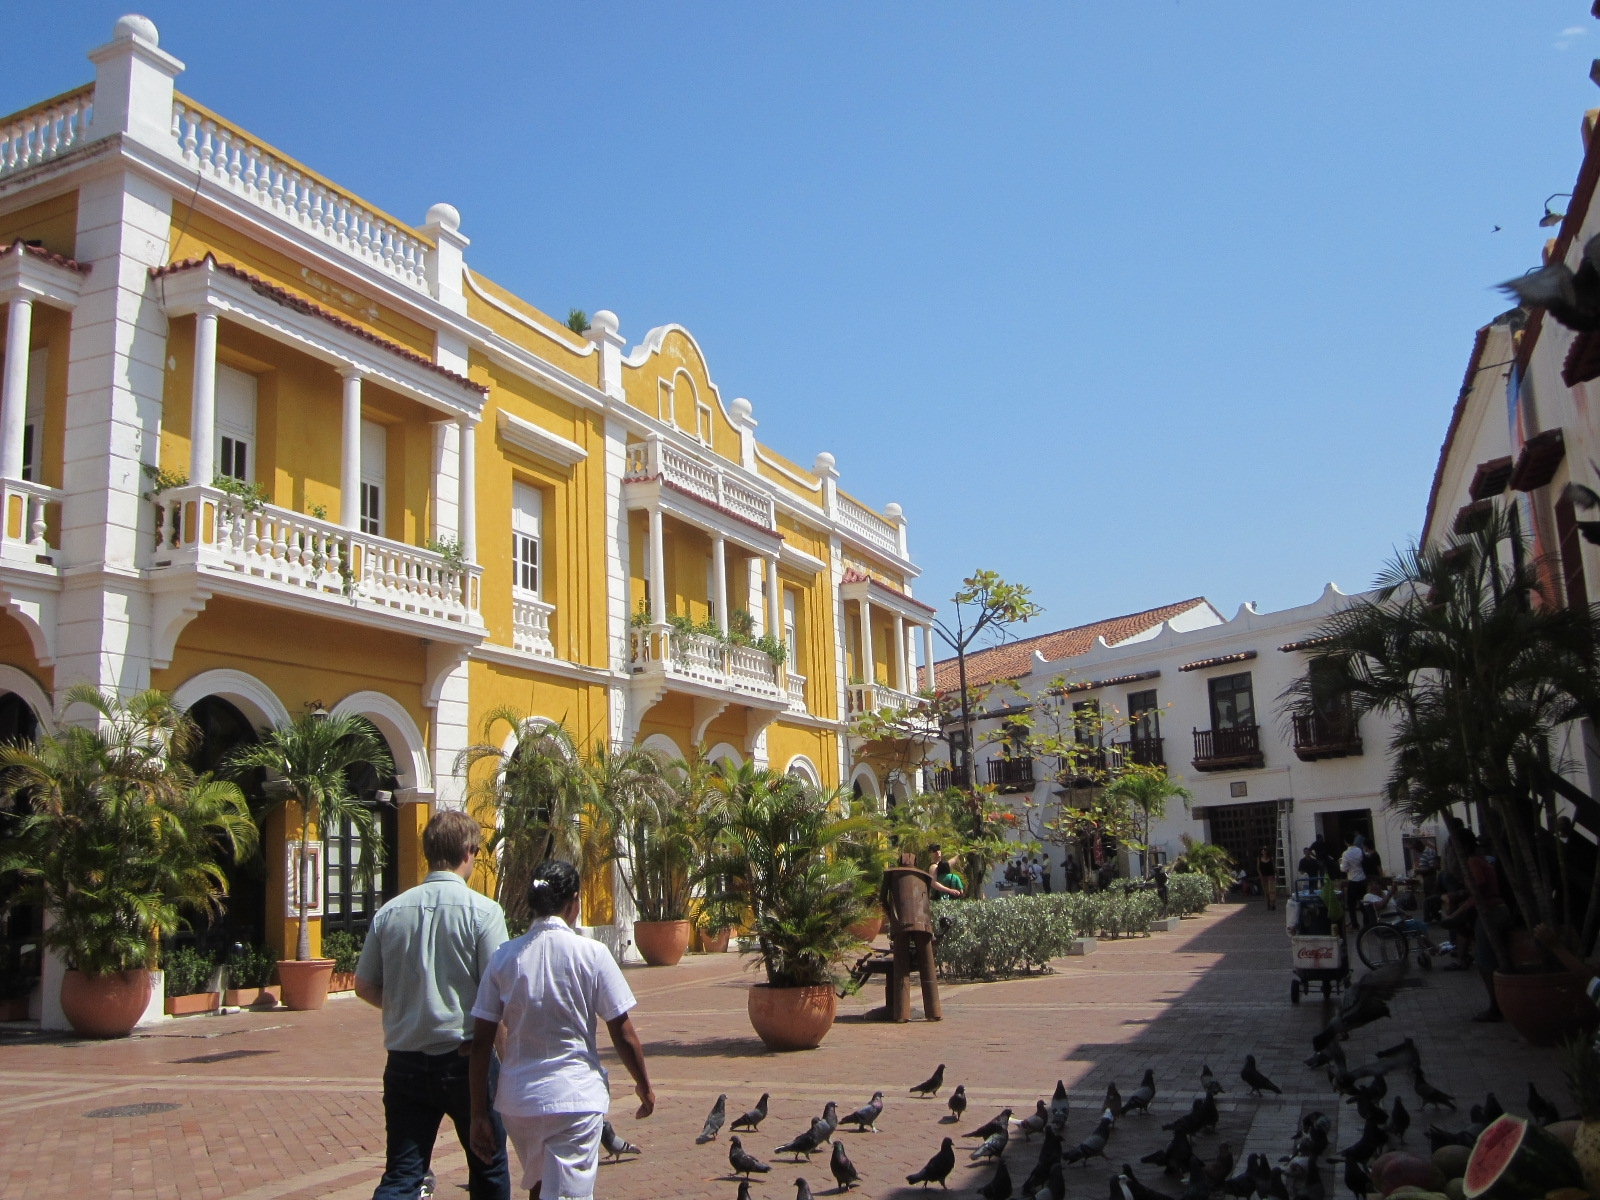 The 10 Best Hotels In Cartagena, Colombia